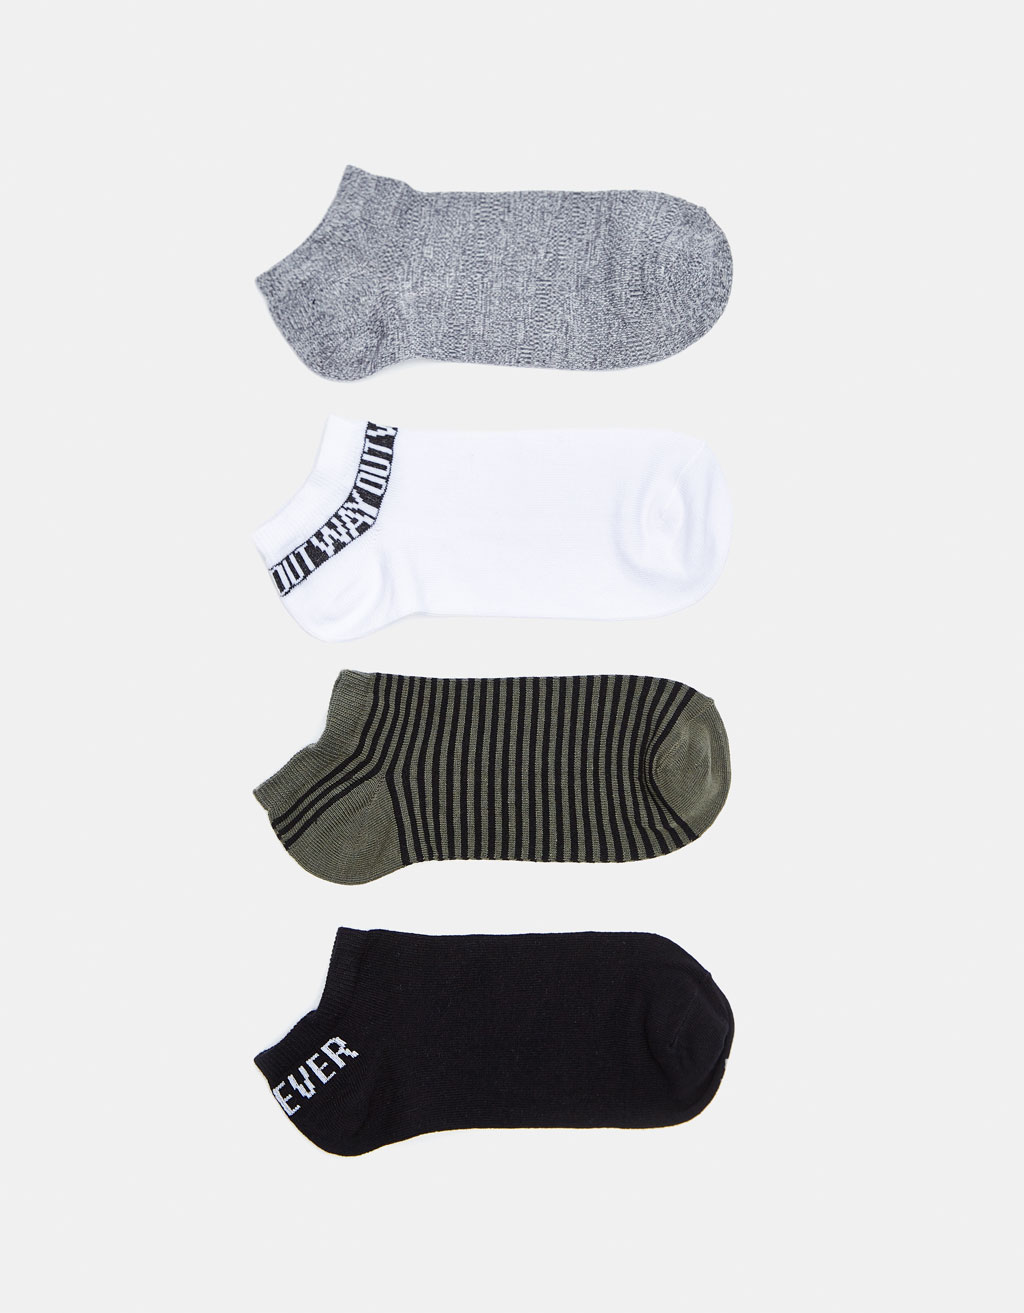 Pack of Join Life ankle socks.